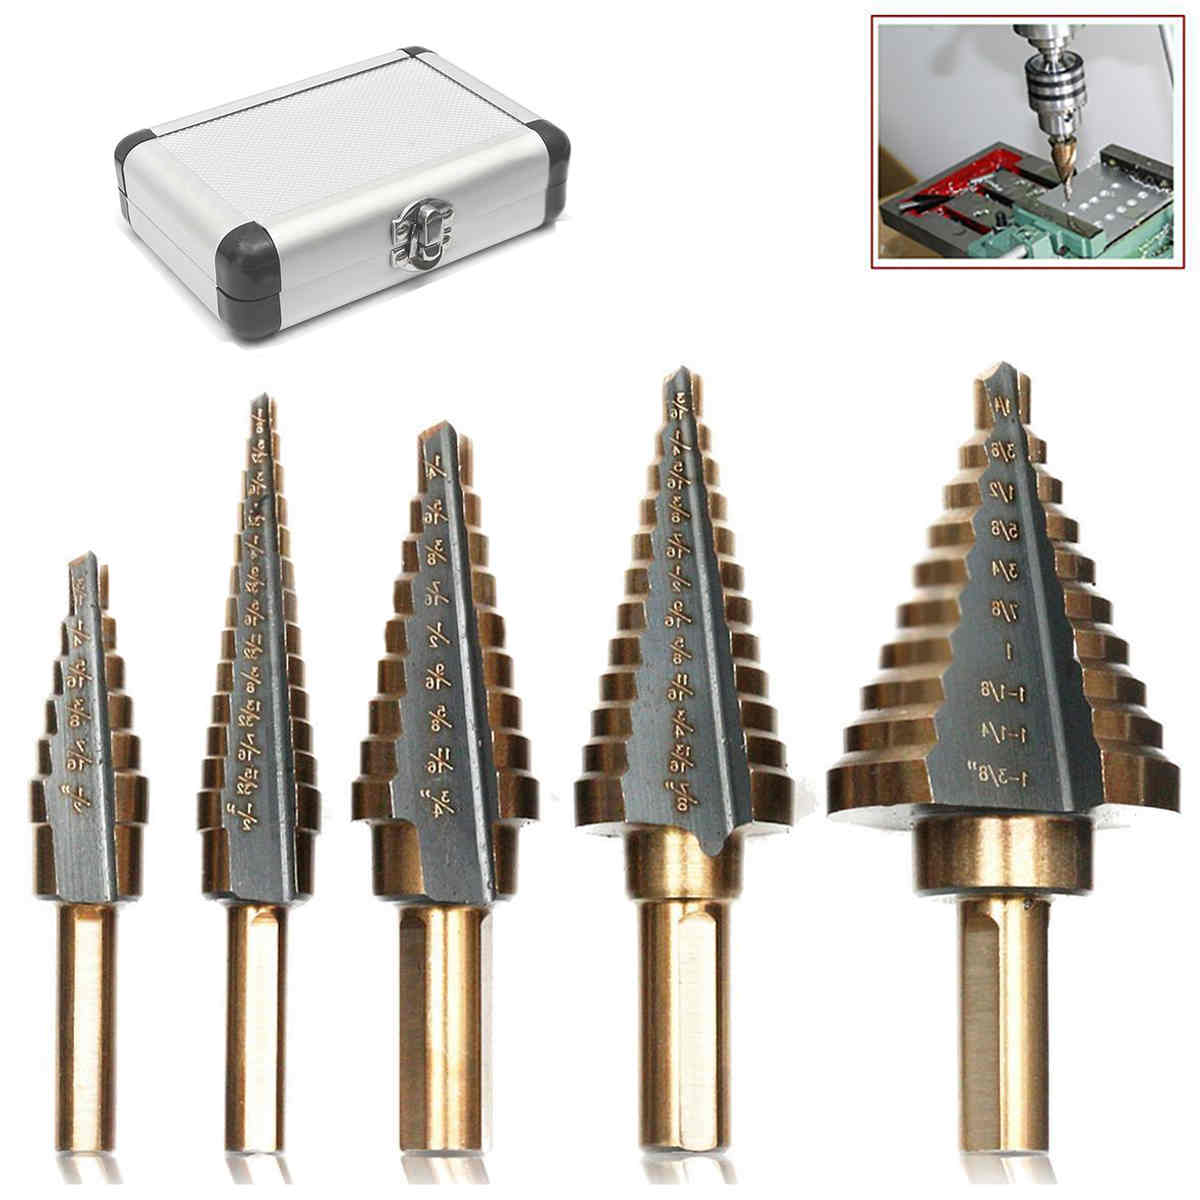 Mayitr 5pcs Industrial Countersink Drill Bit Set HSS Large Cobalt Hole Titanium Cone Step Drill Bit Cutter Kit Tools New 2017 5pcs industrial countersink drill bit set mayitr hss large cobalt hole titanium cone step drill bit cutter kit tools